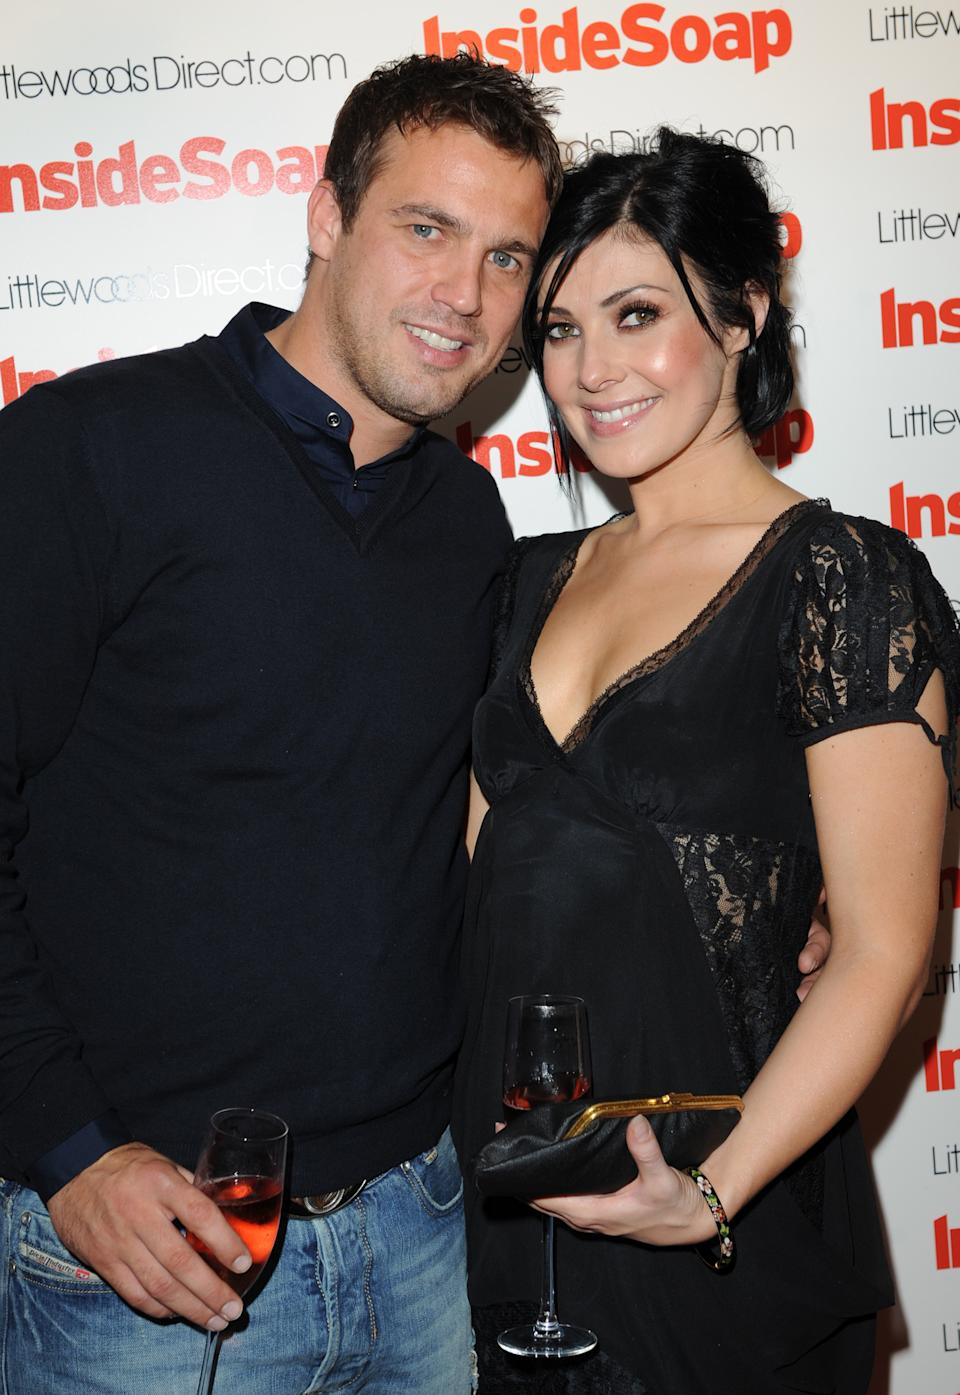 Jamie Lomas and Kym Marsh arriving at the Inside Soap Awards 2008 Launch Party, sponsored by LittlewoodsDirect.com. Held at the Great John Street Hotel, Manchester.